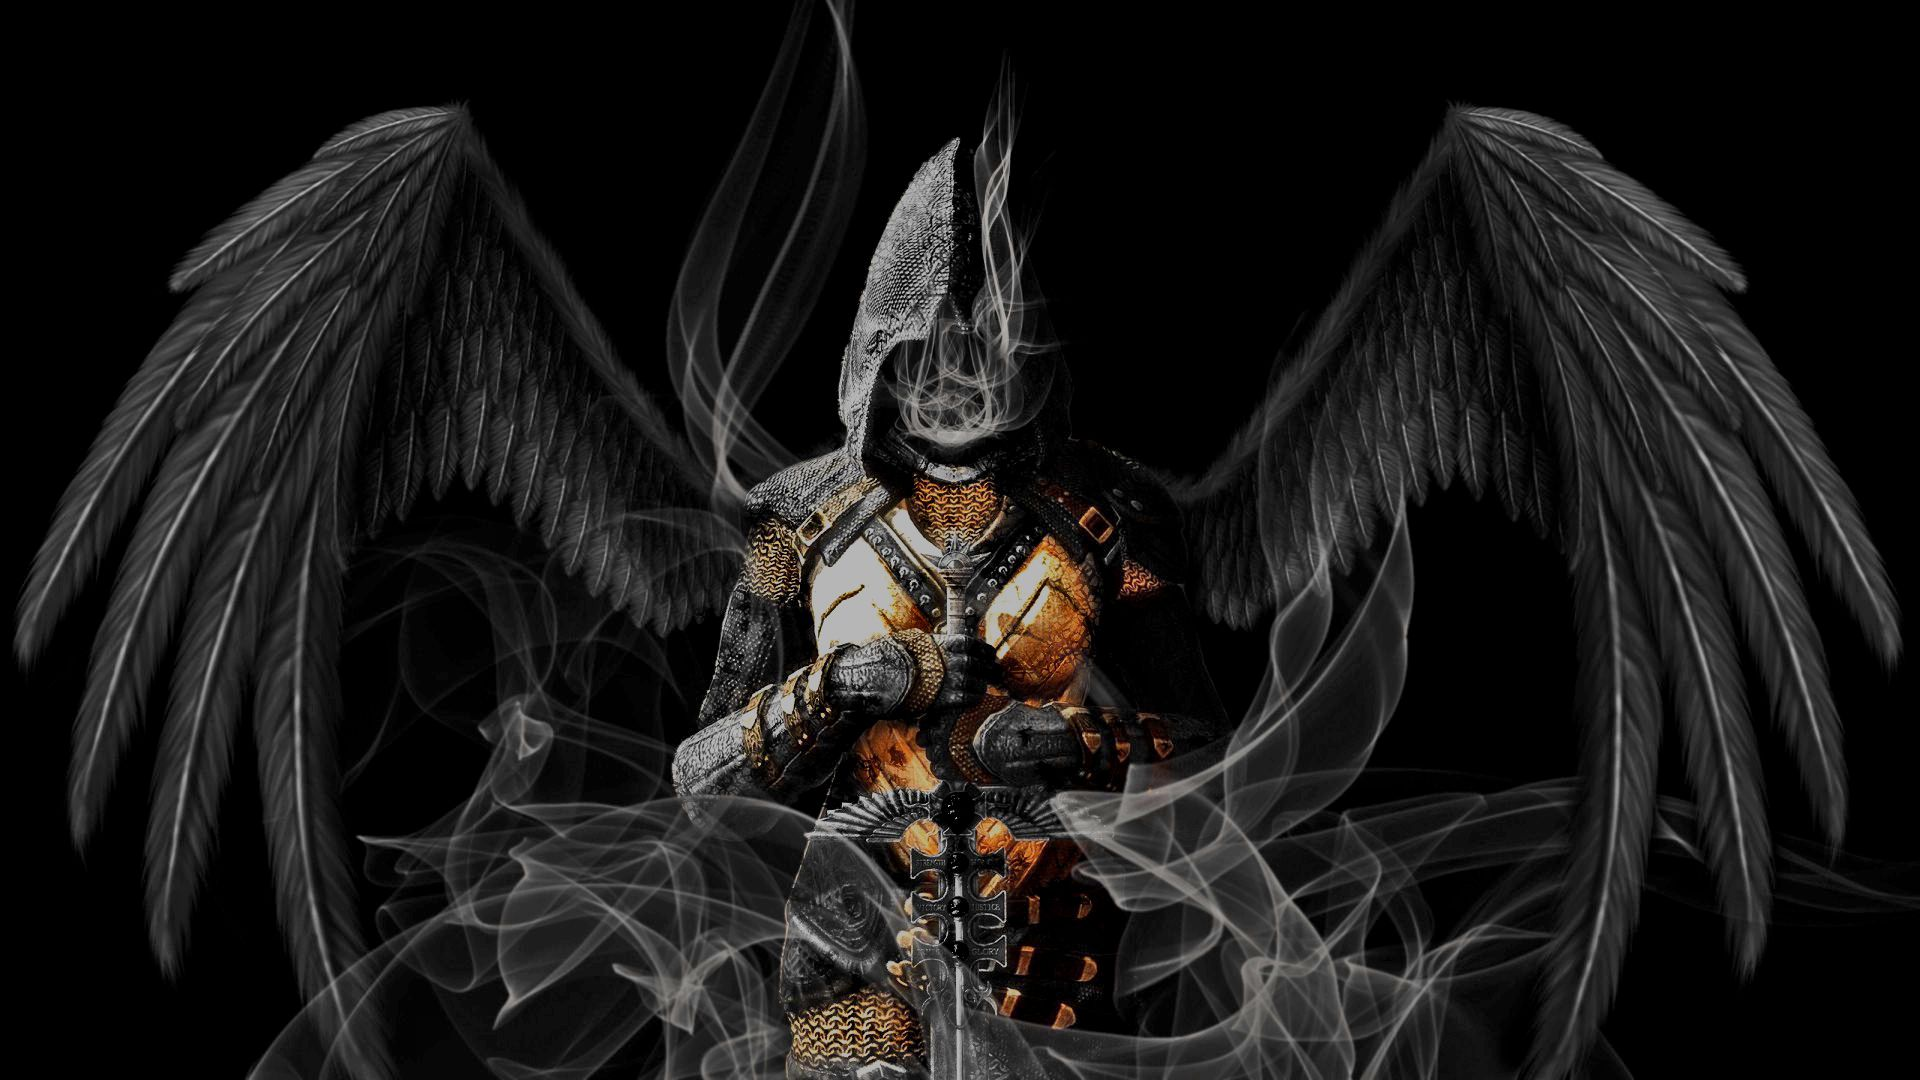 other wallpaper angel warrior - photo #17